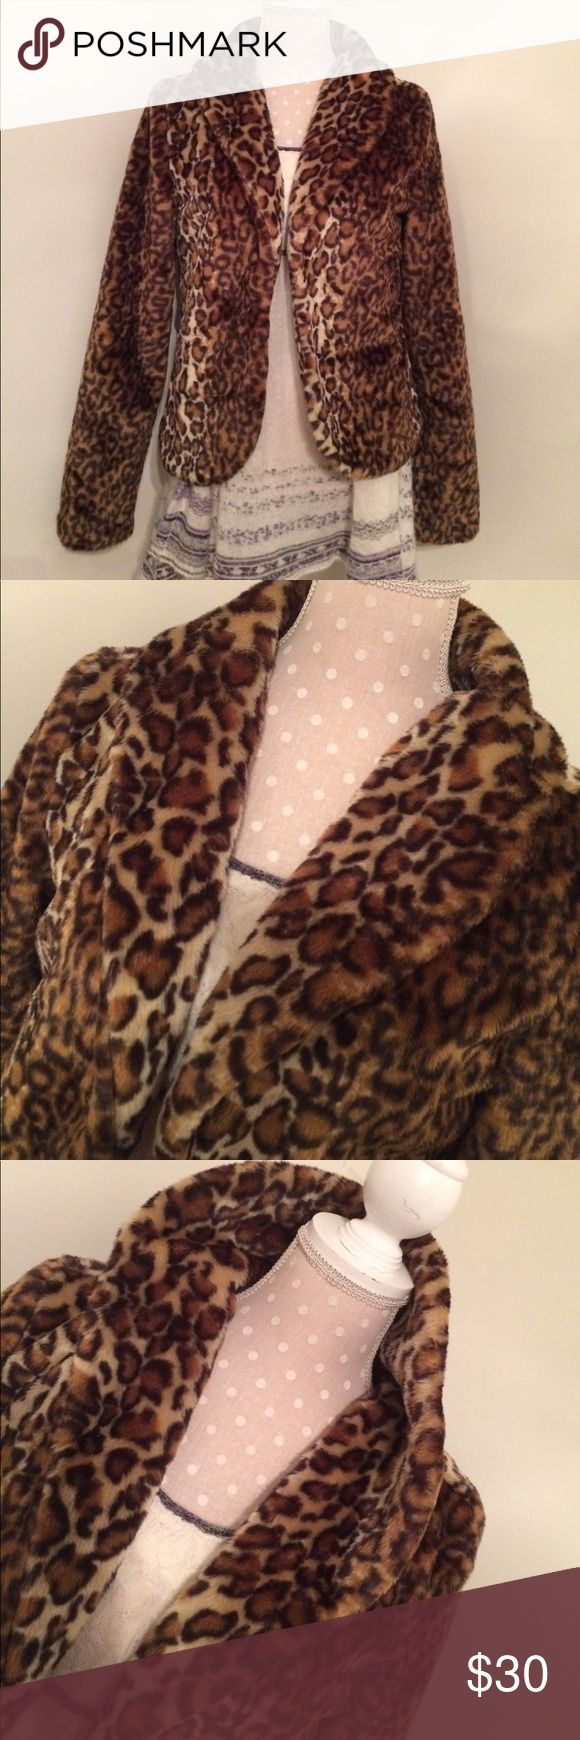 "Tulle animal print faux fur jacket Adorable piece is just right to wear over a strappy dress  for a sexy night out! Shell and exterior are both 100% polyester. Measures  22"" down from the seam of the collar to very bottom hem. Arm length is 24"".. This item os flawless. Comes from a non smoking seller. 20% off discount applies to 3 or more items! Thank you for looking.💗 Tulle Jackets & Coats"